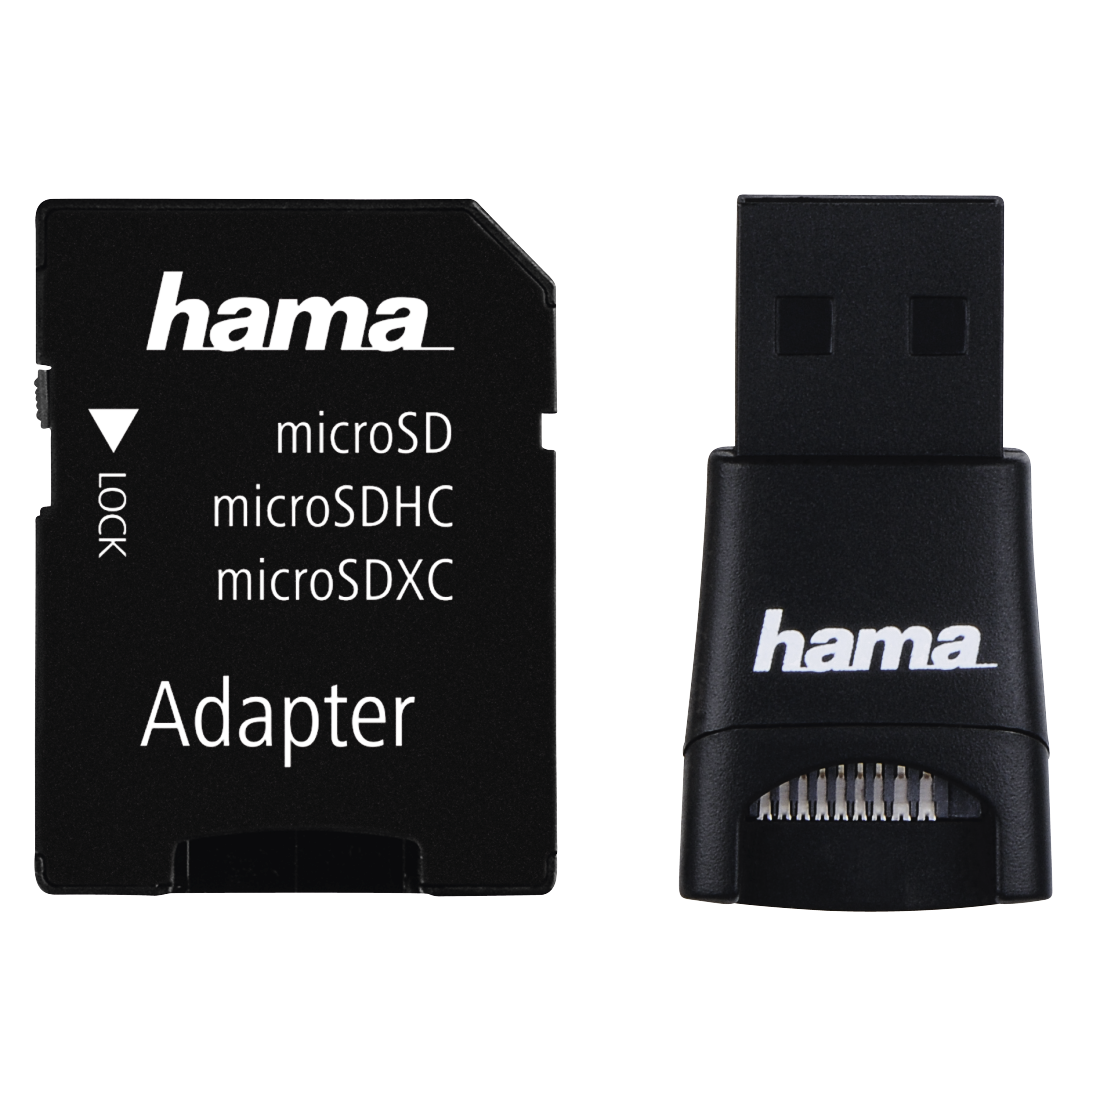 abx High-Res Image - Hama, USB 2.0 Card Reader + Adapter Kit, microSD, black